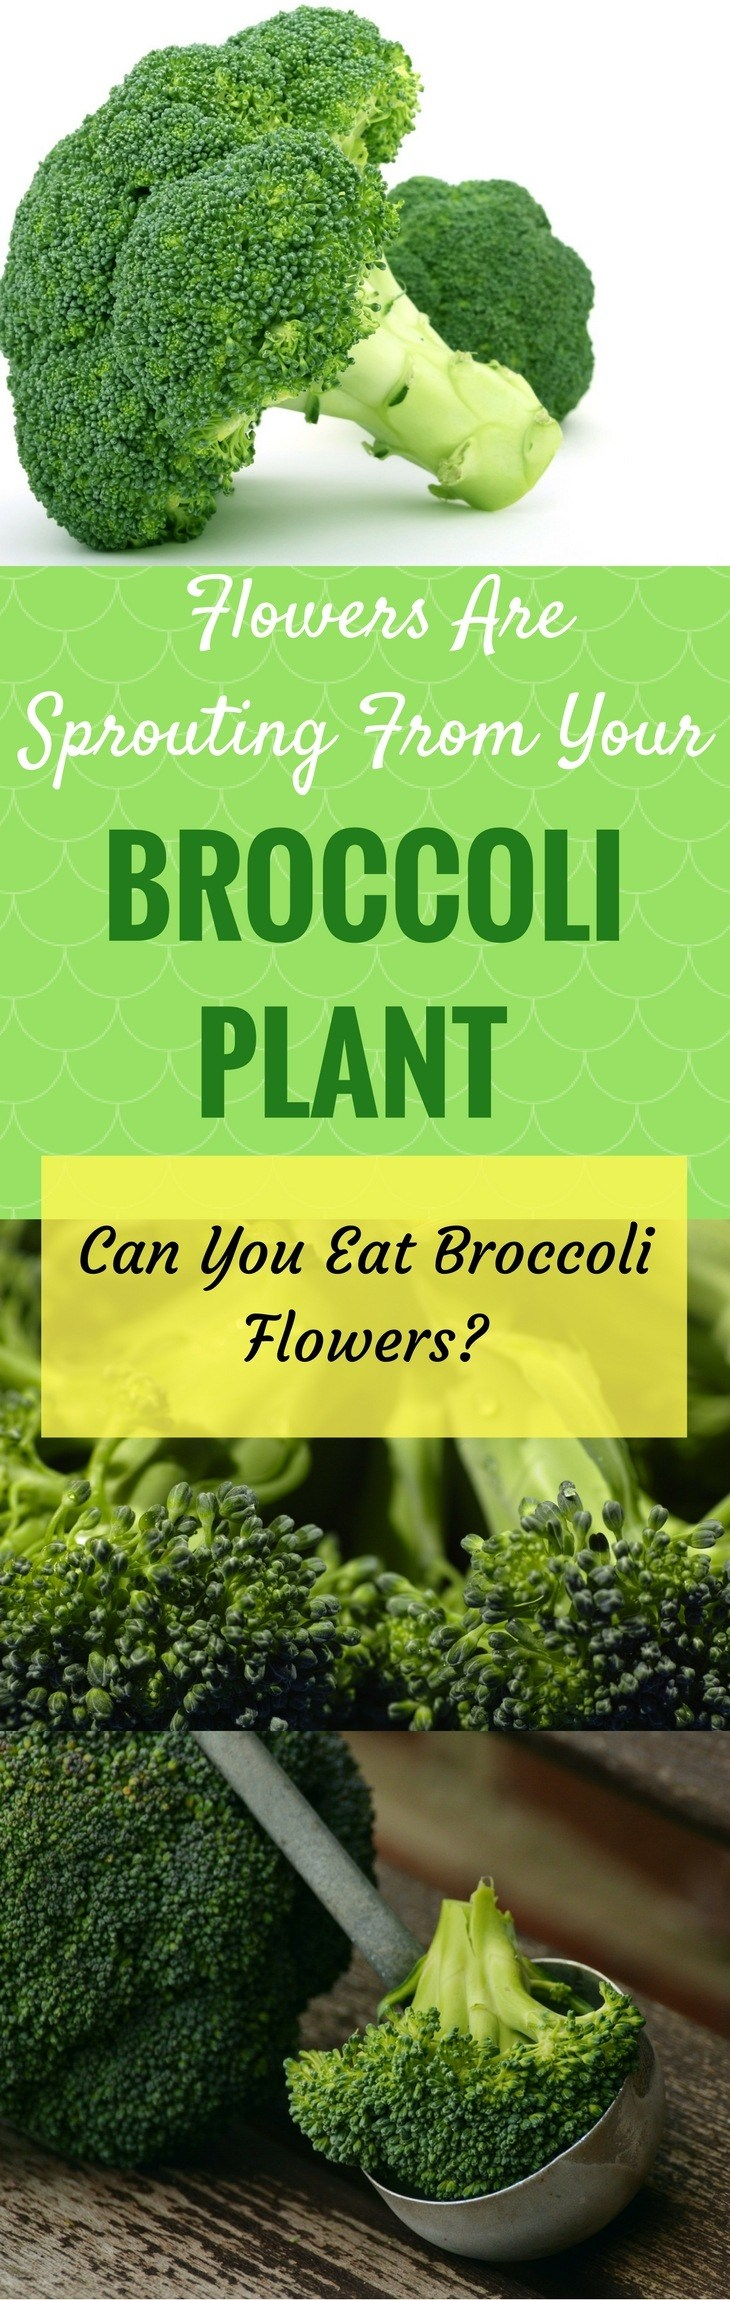 Flowers Are Sprouting From Your Brocolli Plant Can You Eat